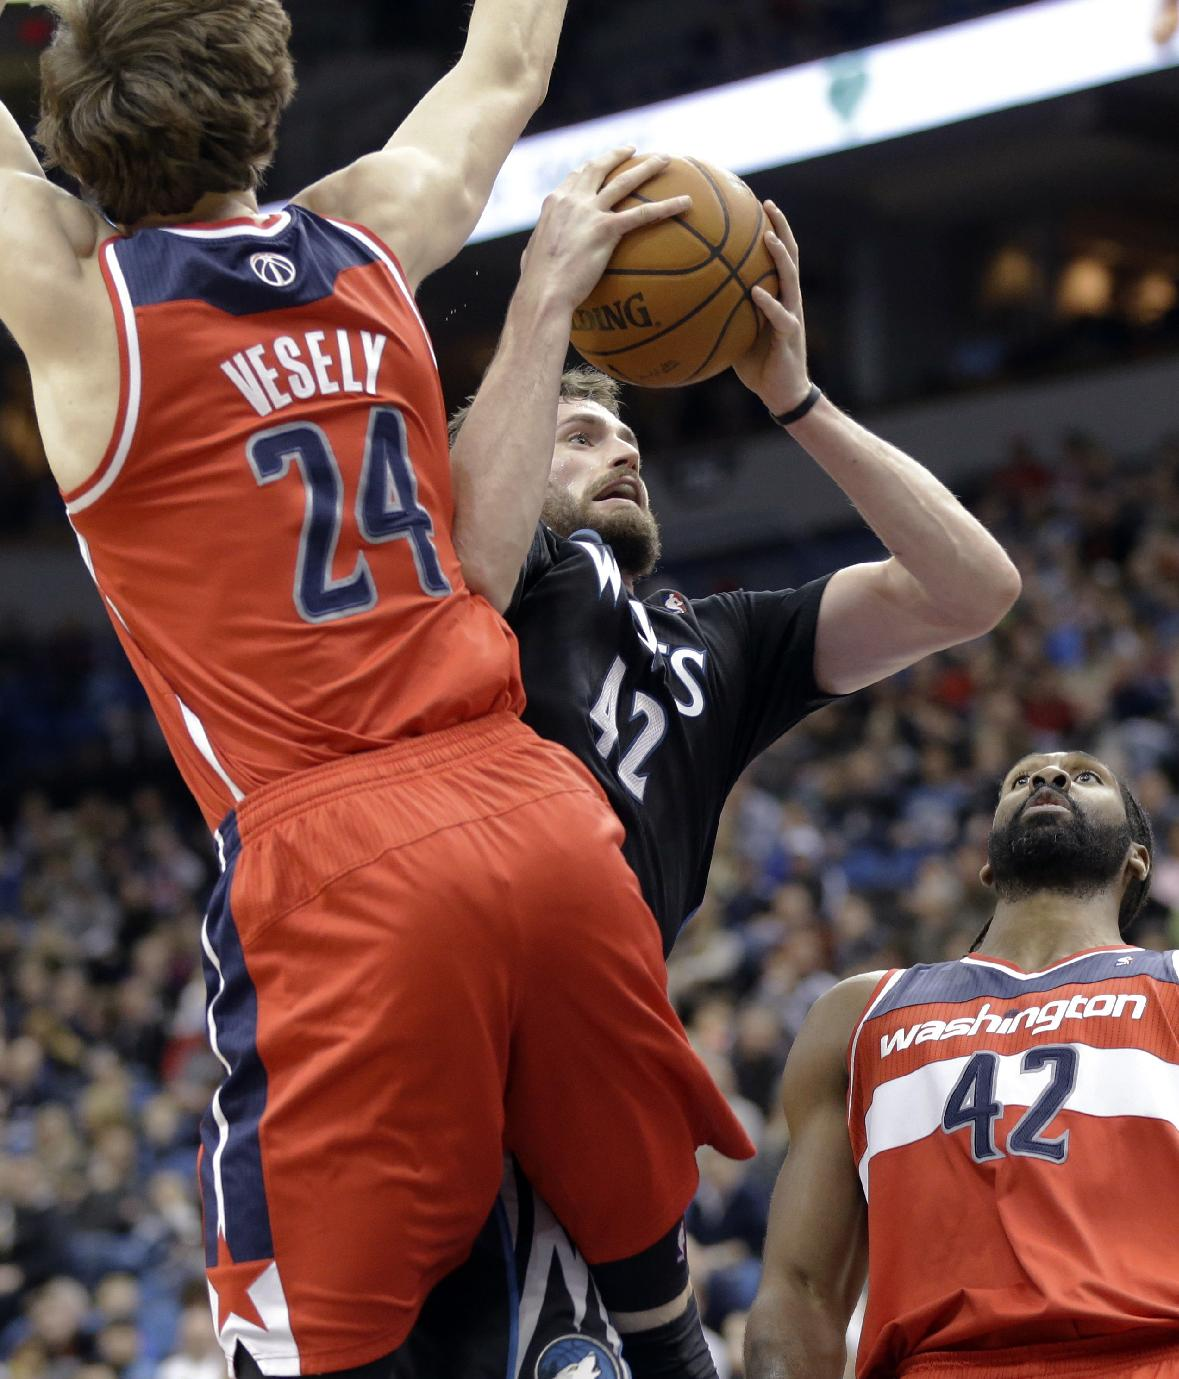 Minnesota Timberwolves' Kevin Love lays up a shot between Washington Wizards' Jan Vesely, left, of the Czech Republic, and Nene Hilario, of Brazil, during the first quarter of an NBA basketball game, Friday, Dec. 27, 2013, in Minneapolis